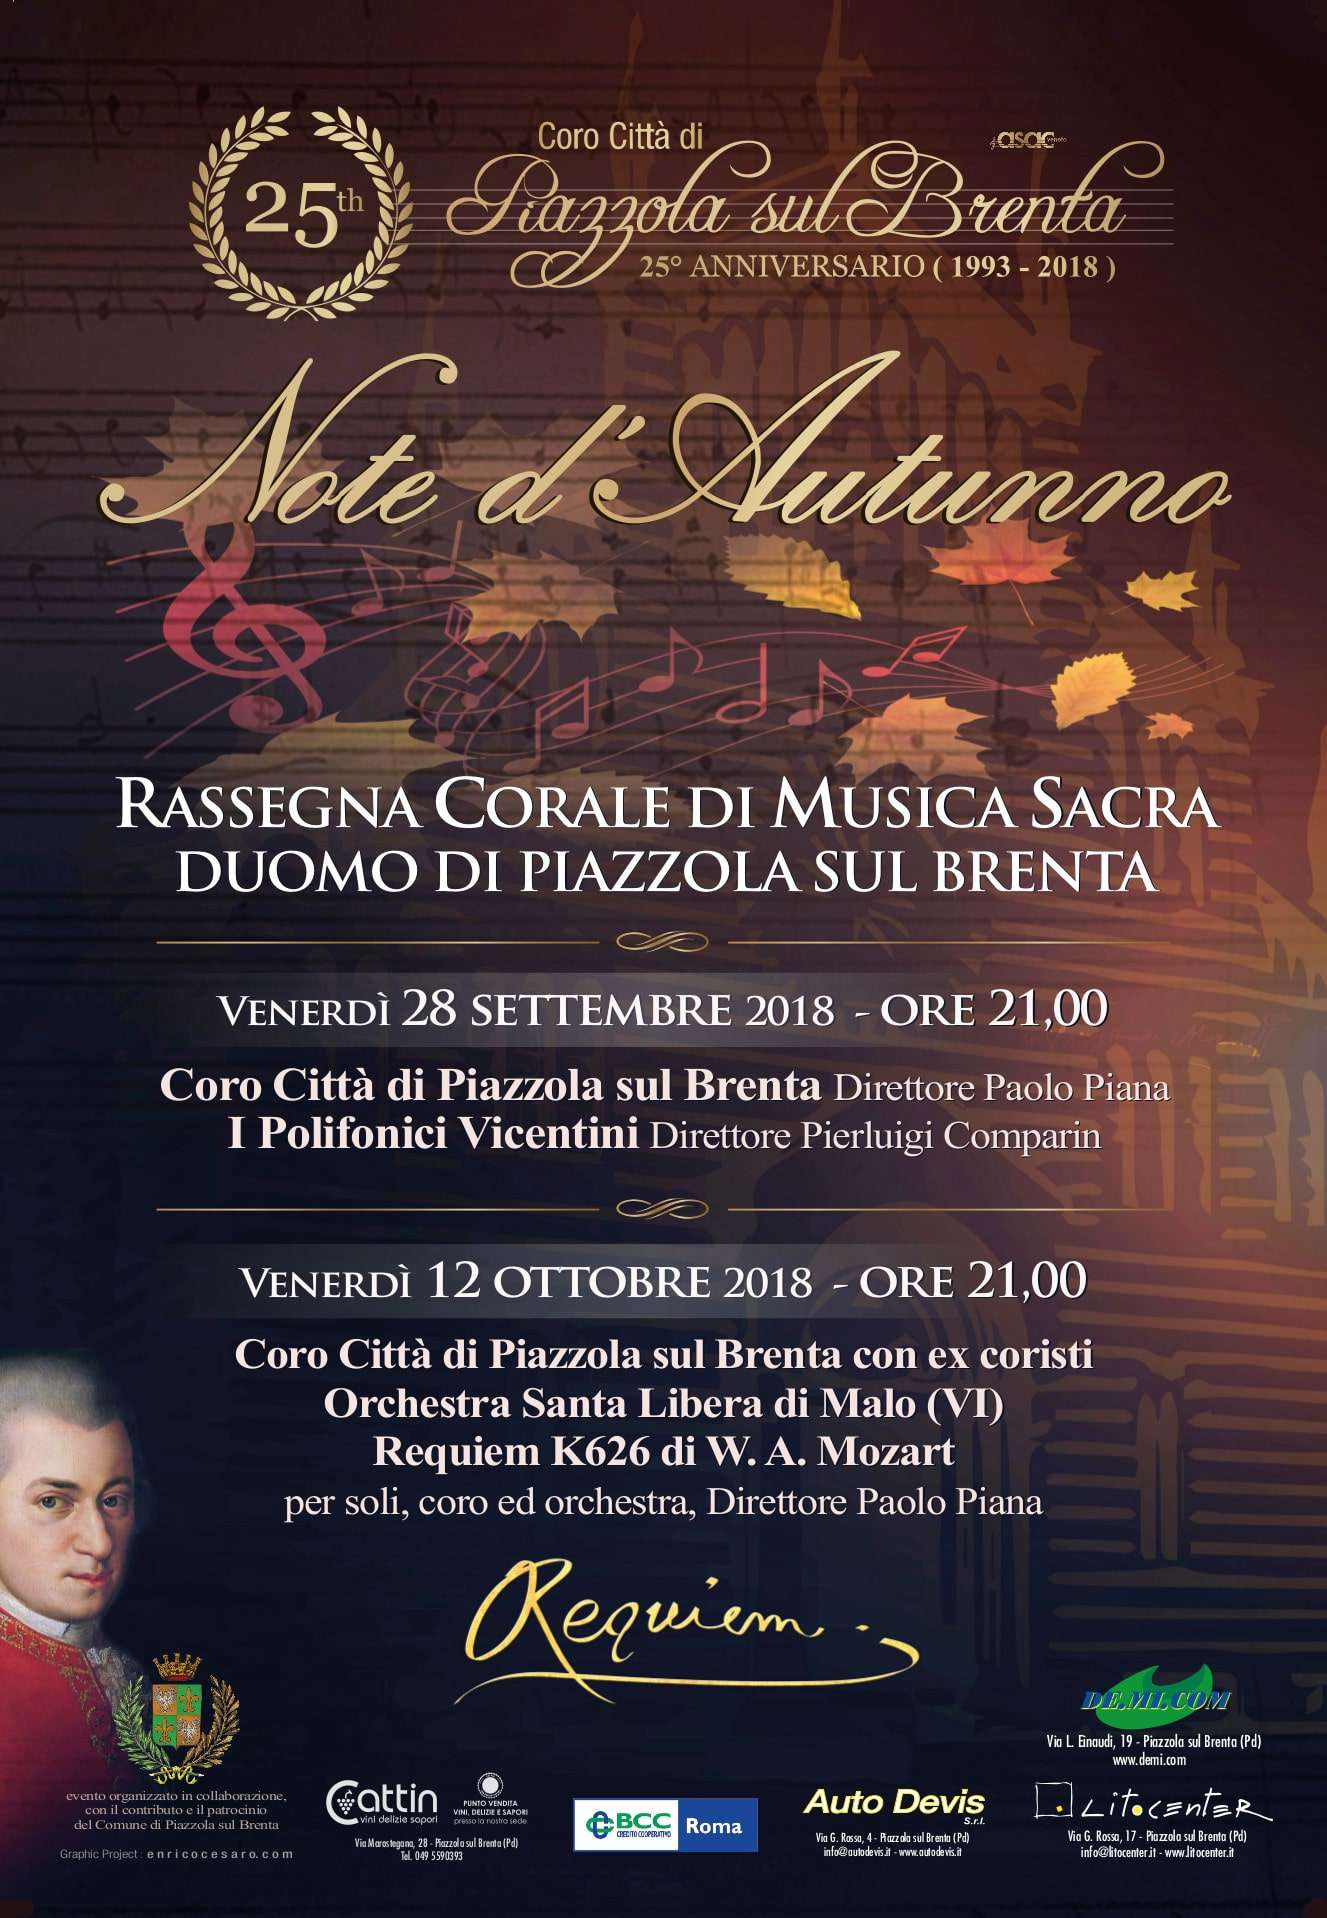 Notte d'autunno 2018